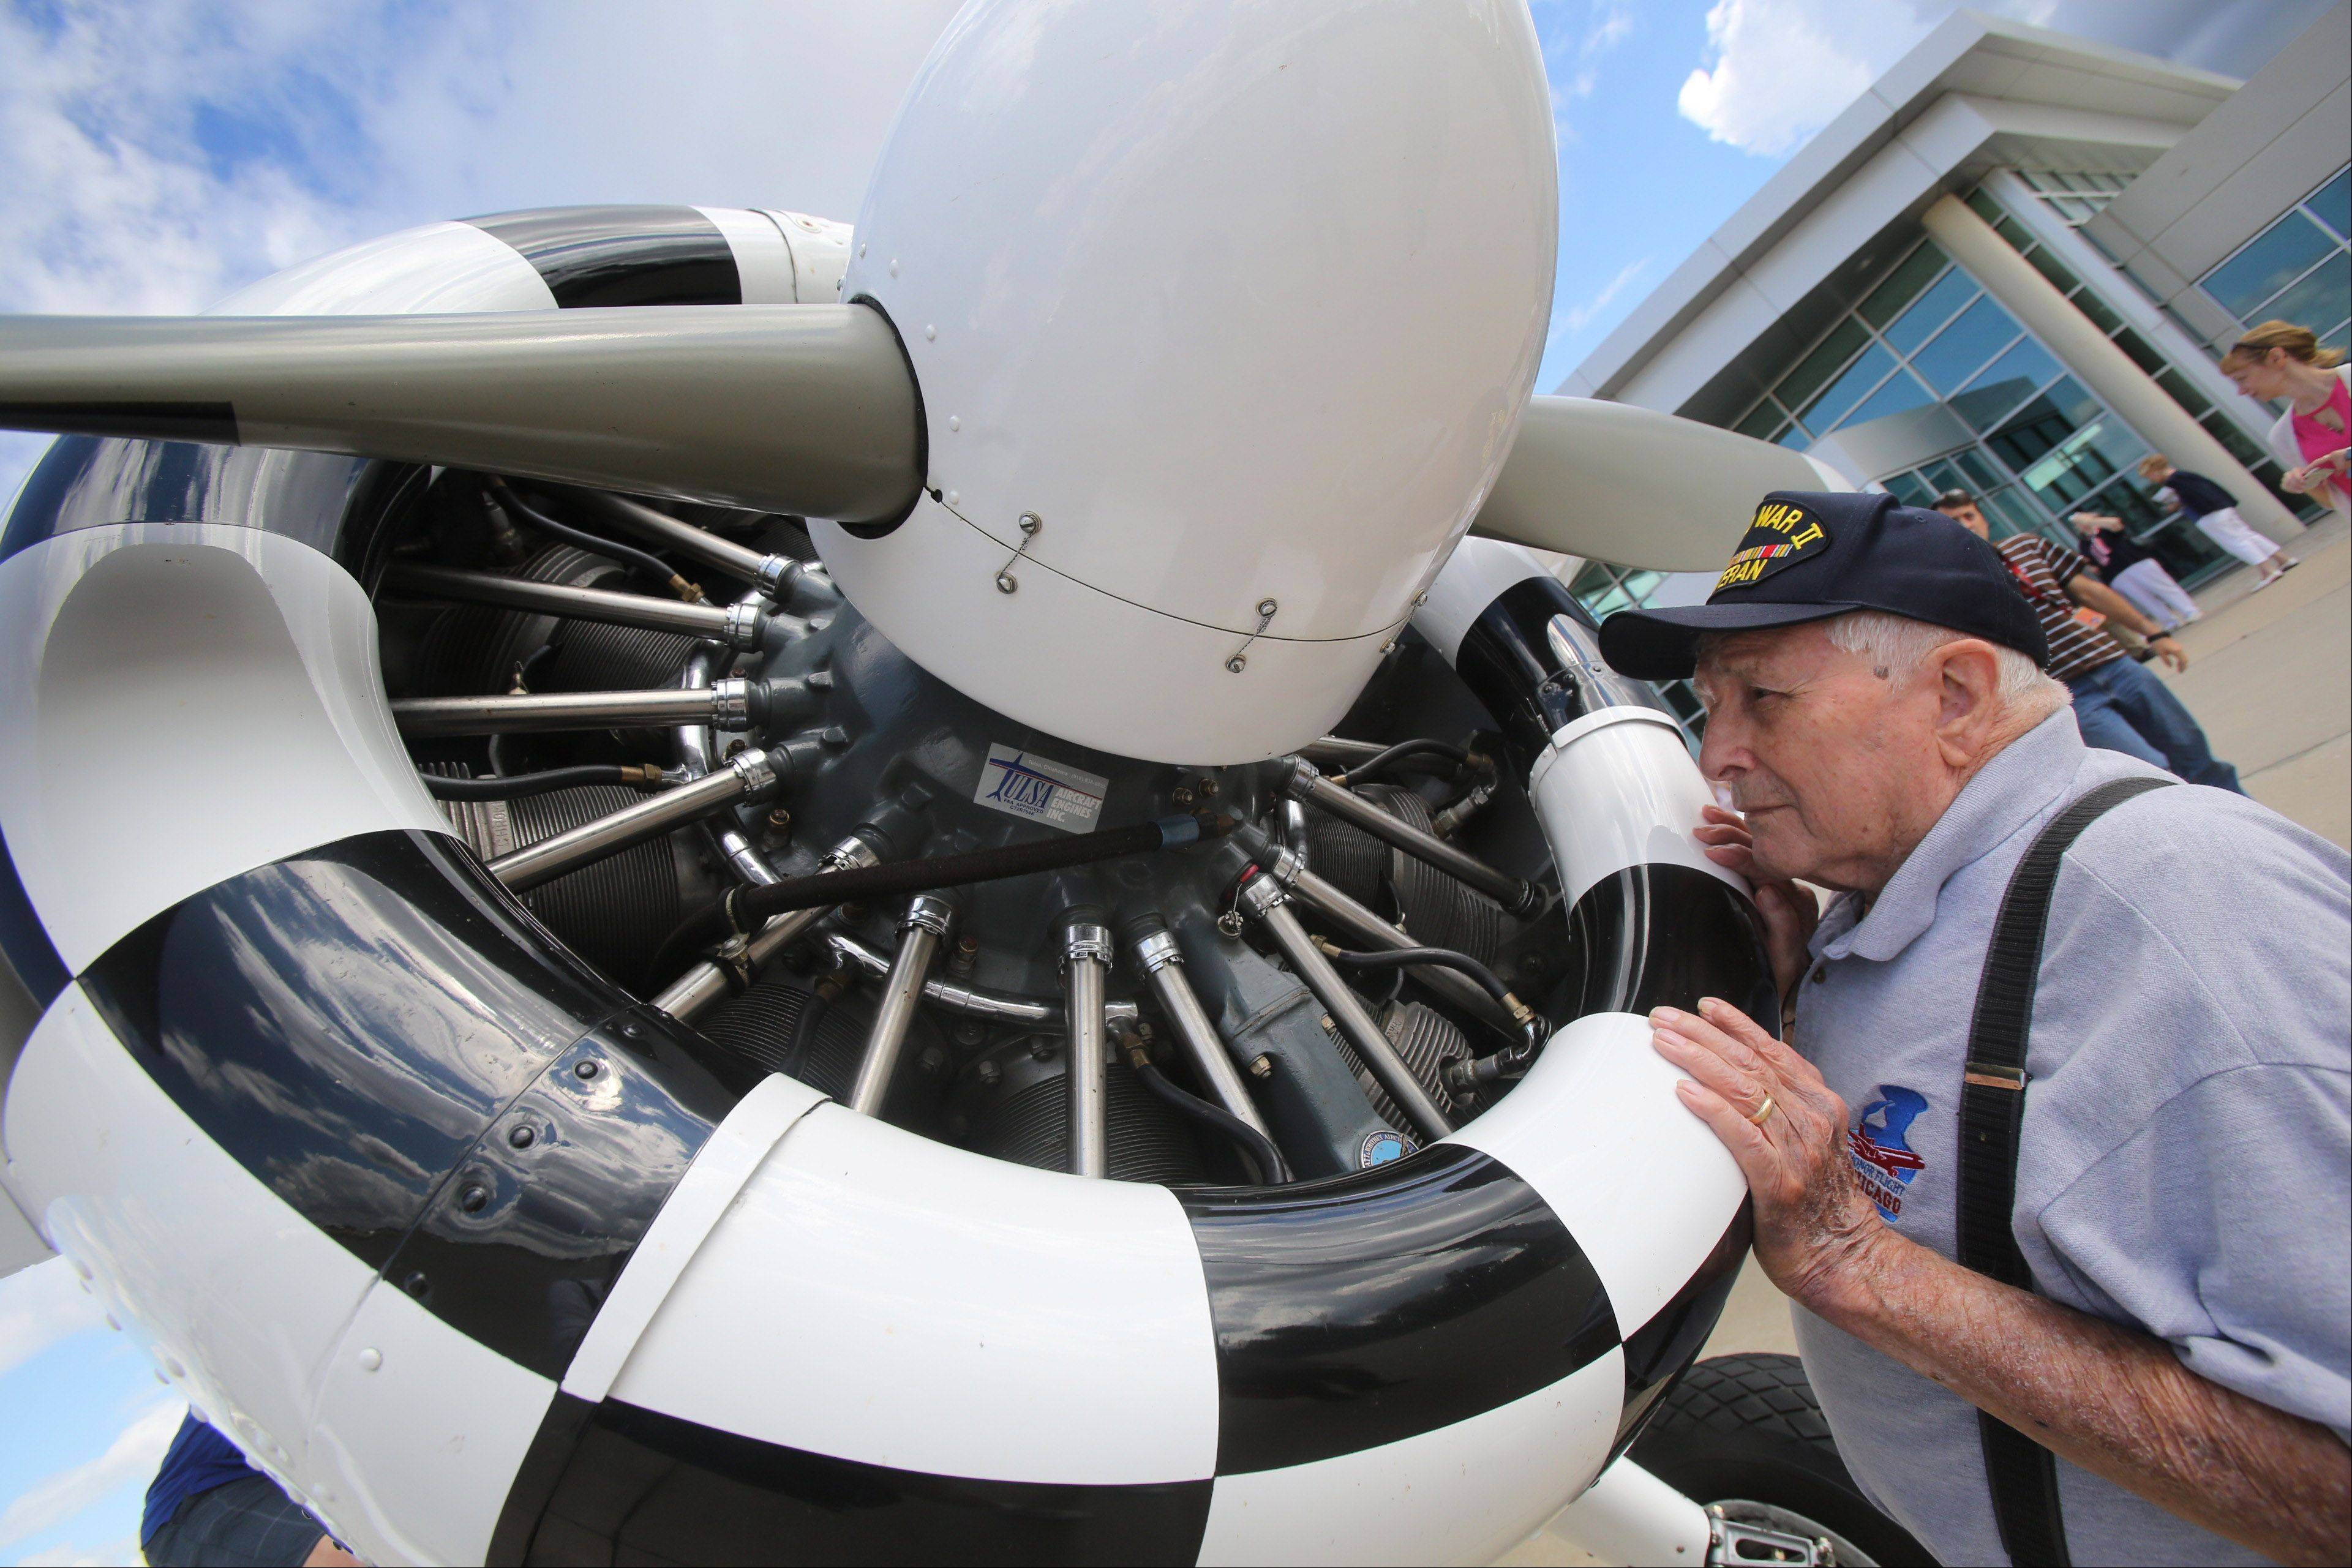 Former World War II airplane mechanic Tony Thomas, 91, looks at the engine of a 1942 Boeing Stearman before flying in it Monday at Chicago Executive Airport in Wheeling.